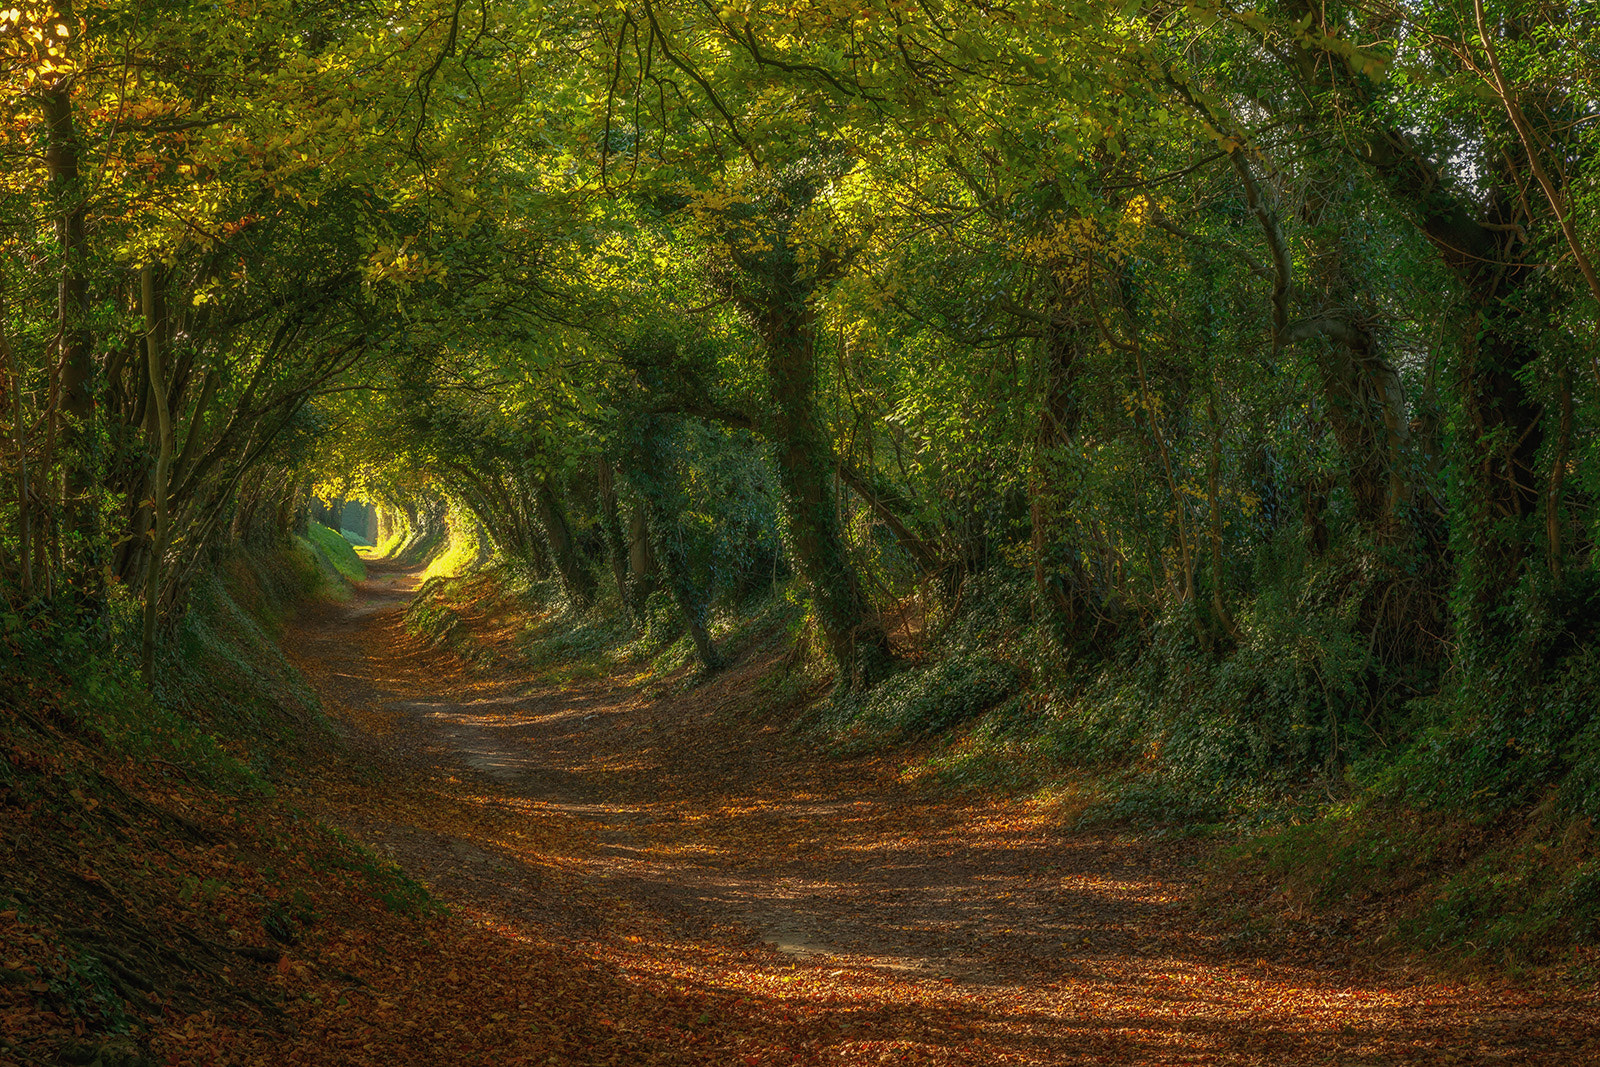 Photograph Hobbit by Sam Moore on 500px